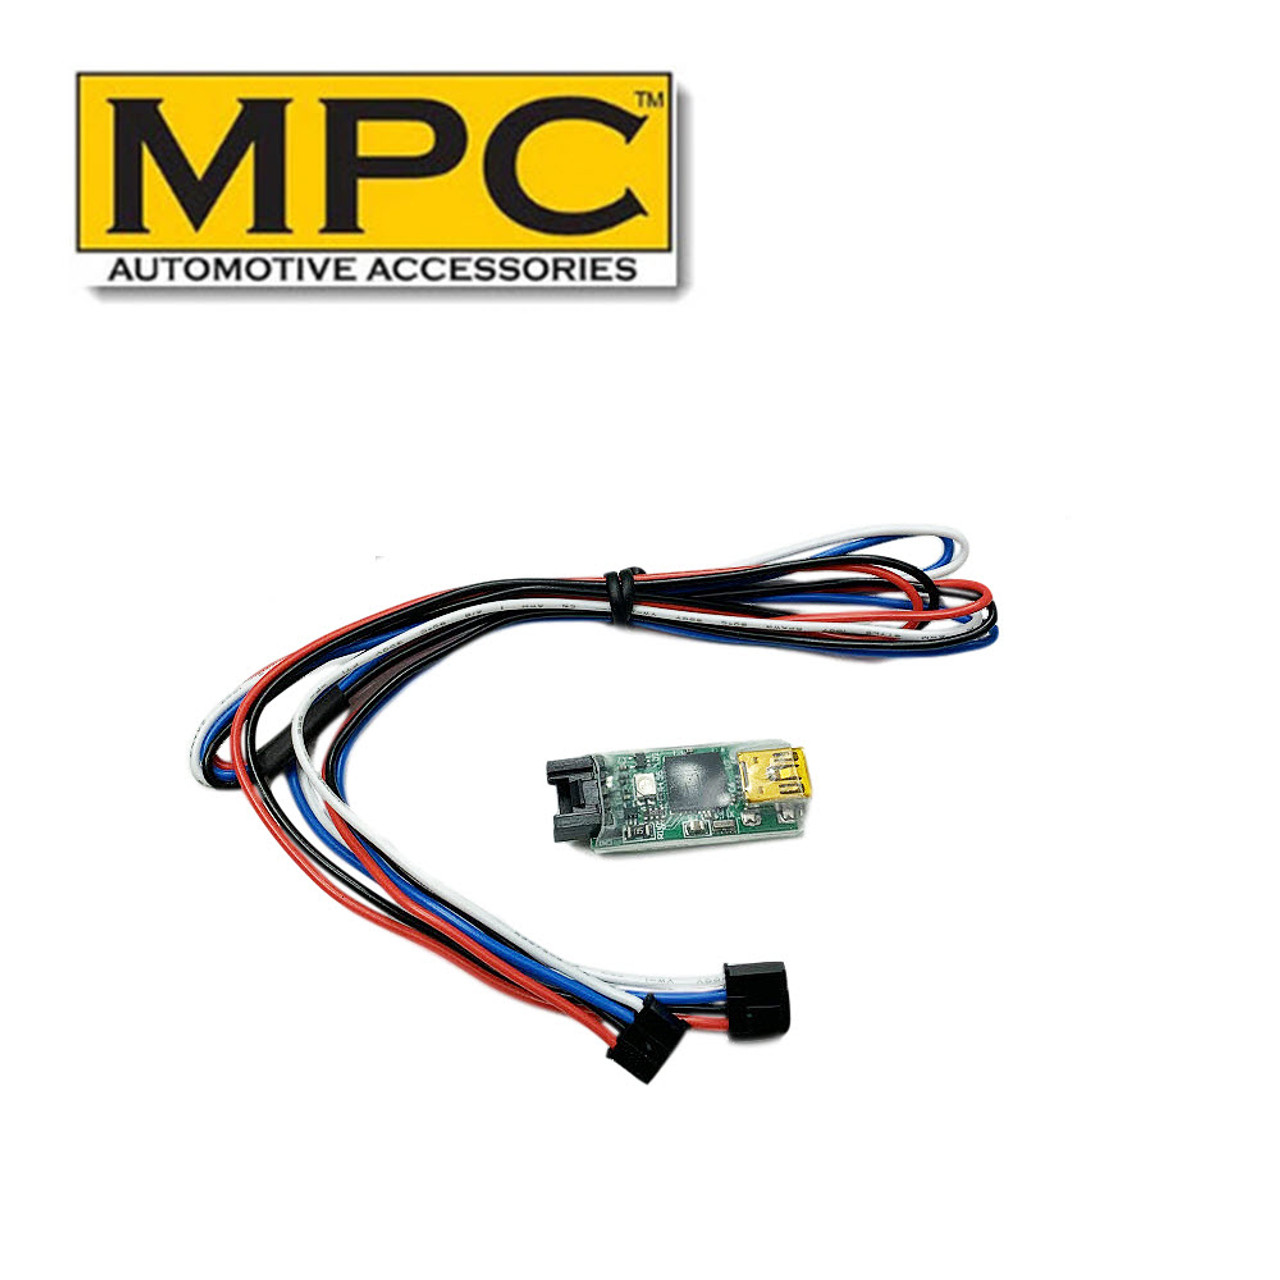 MPC 4 Button 1 Way Remote Start For 2018-2020 Chrysler Pacifica - Semi Plug-n-Play